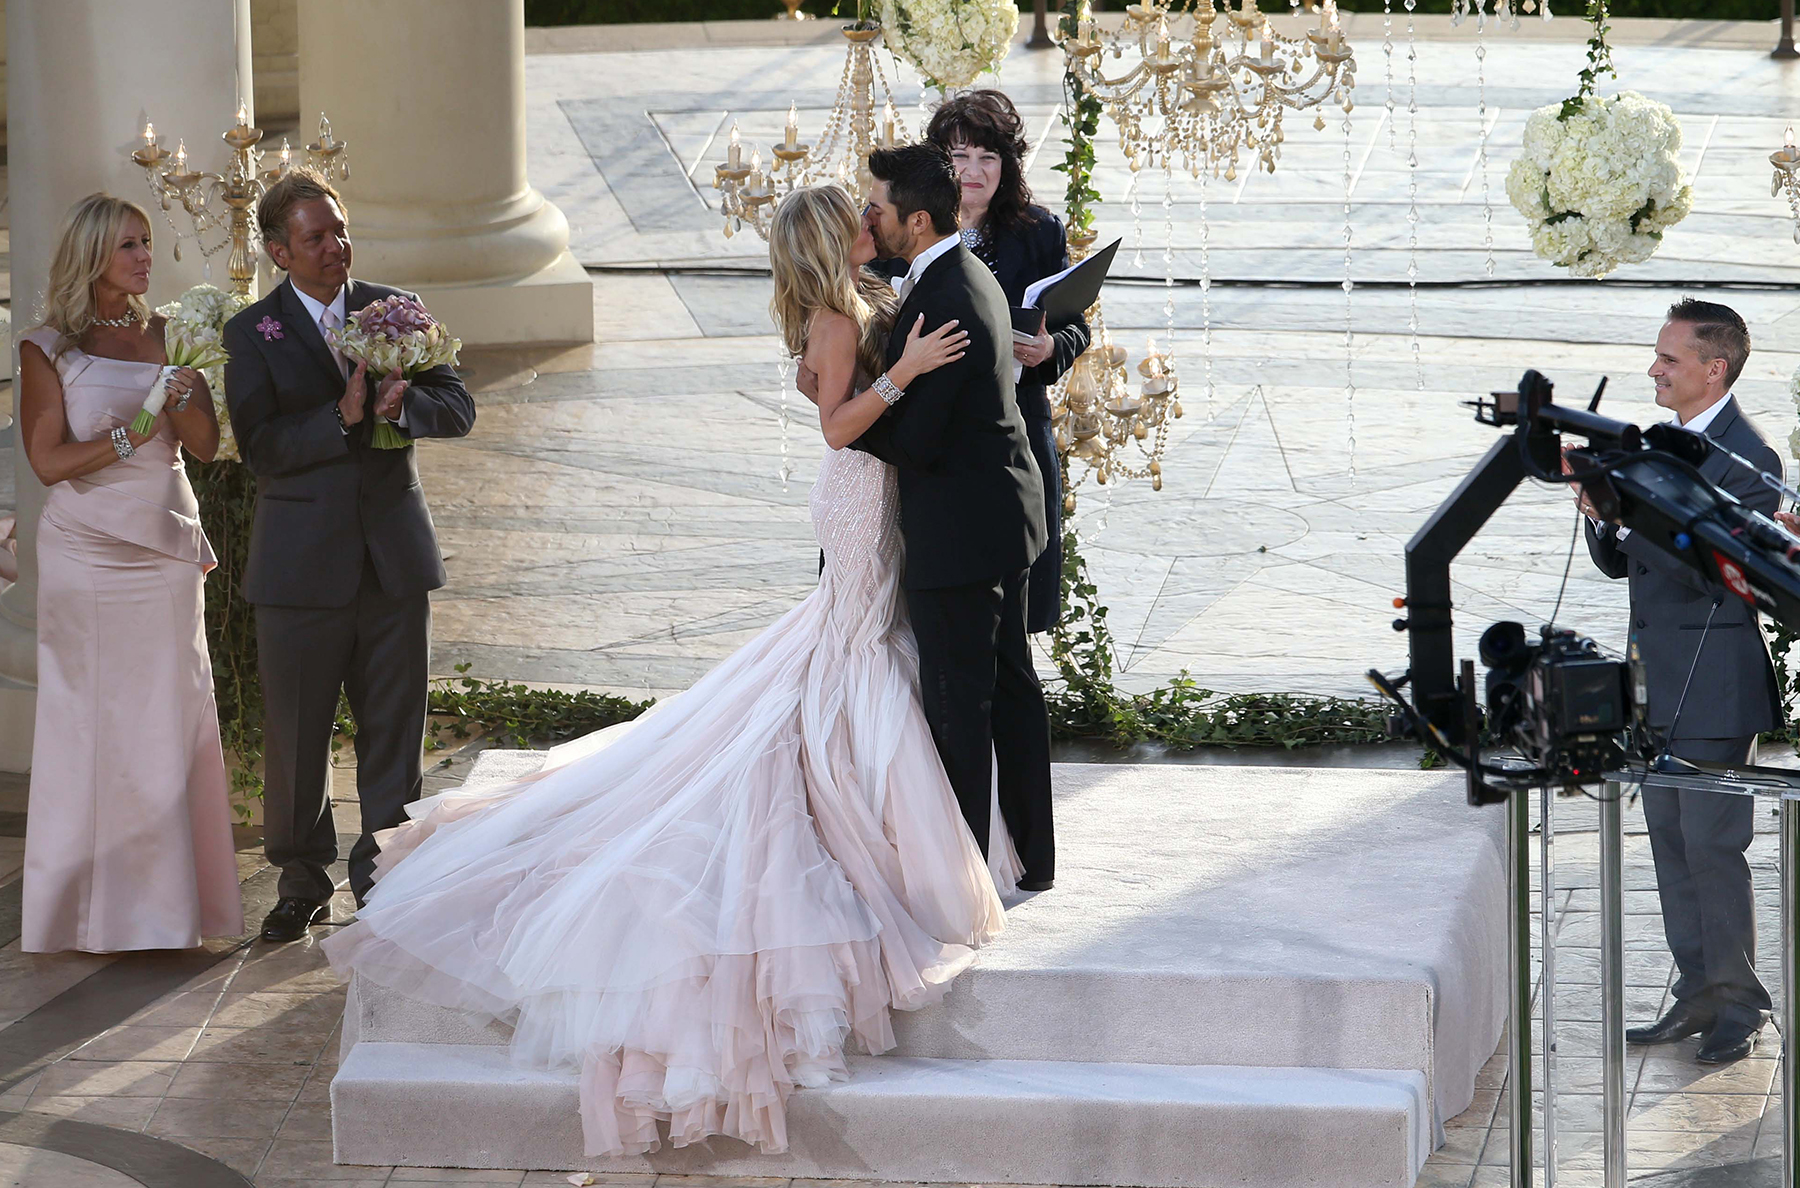 Tamra Barney and Eddie Judge marry at a sunset ceremony in Laguna Beach, California